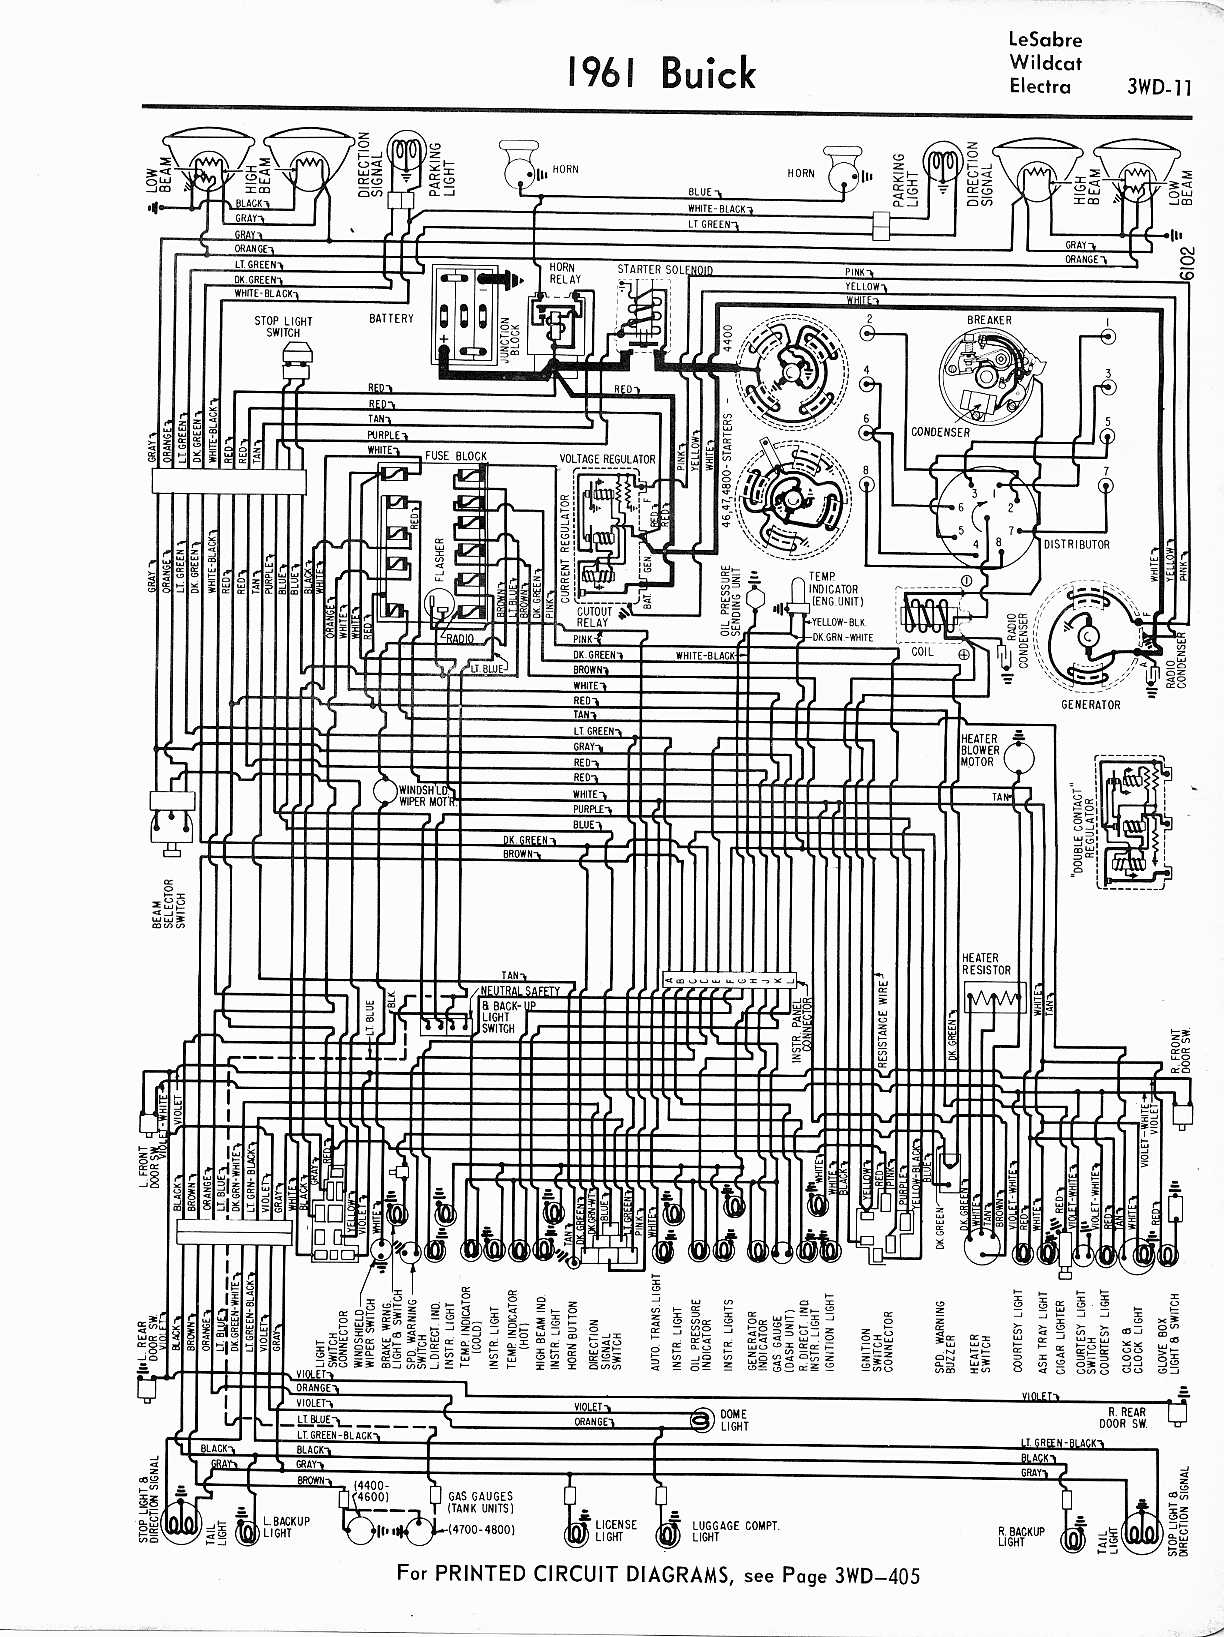 MWireBuic65_3WD 011 buick lesabre fuse box diagram wiring diagram simonand 1999 buick century fuse box diagram at soozxer.org